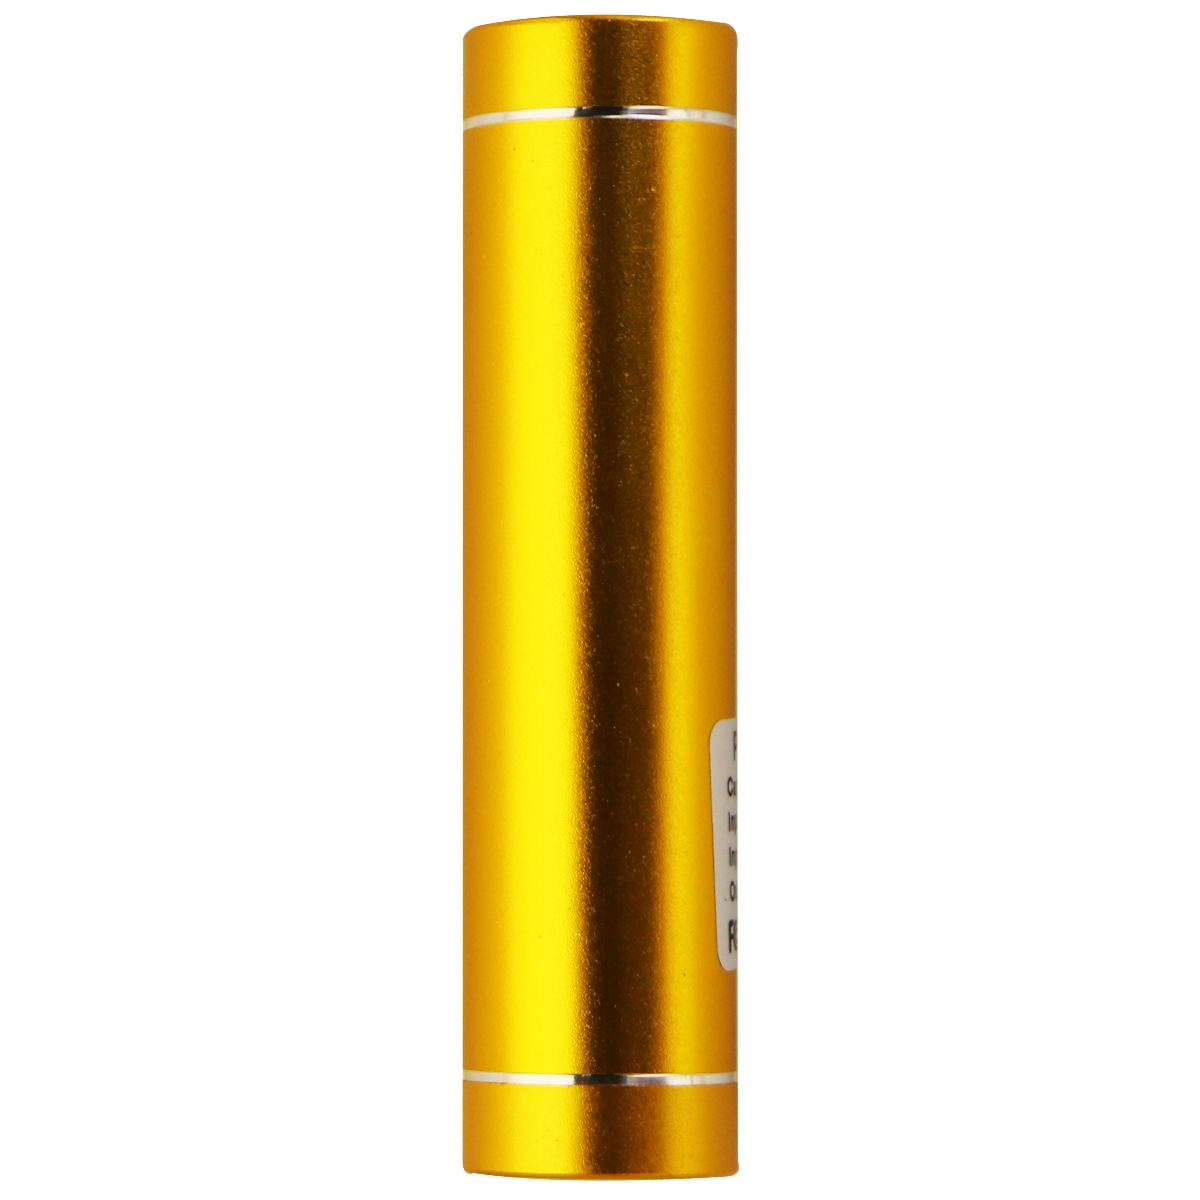 Power Bank Mobile Power Supply Portable Charger for Smartphone 2600mAh, Gold